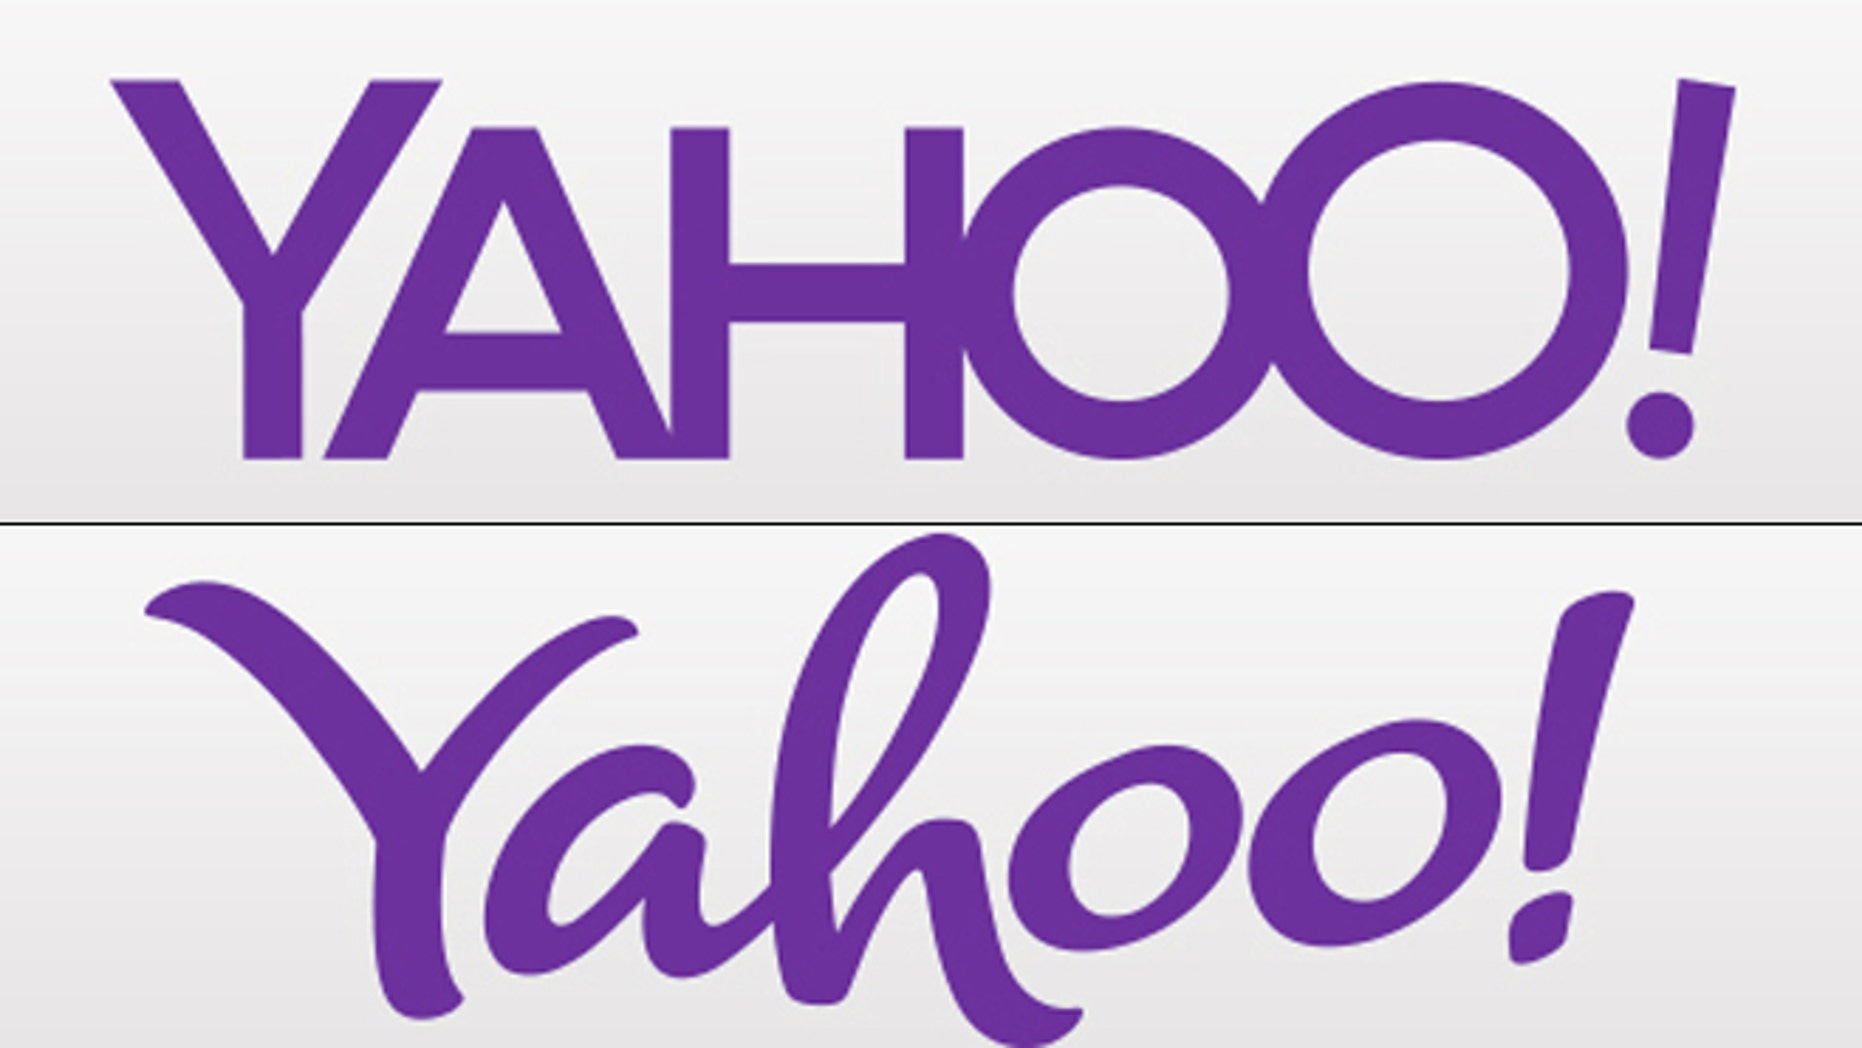 The first two proposed new logos for Yahoo, which plans to unveil a new logo every day for 30 days before settling on a final version.